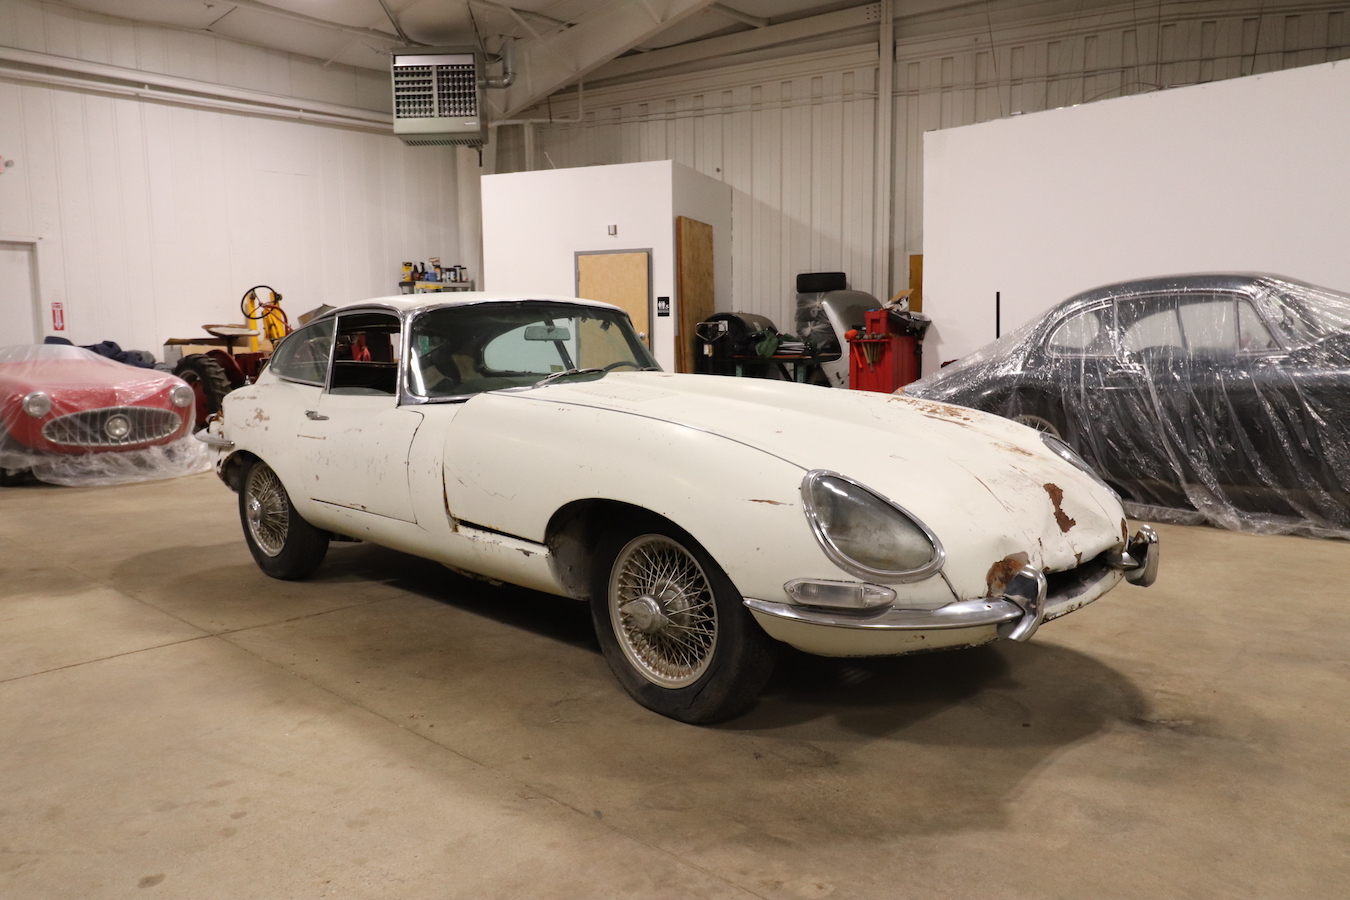 1967 JAGUAR E-TYPE XKE COUPE. SERIES ONE. 4.2 LITERS. COVERED HEADLAMPS, TRIPLE CARBS. WHITE WITH BLACK TRIM. 4-SPEED, WIRE WHEELS. GOOD CAR FOR RESTORATION.